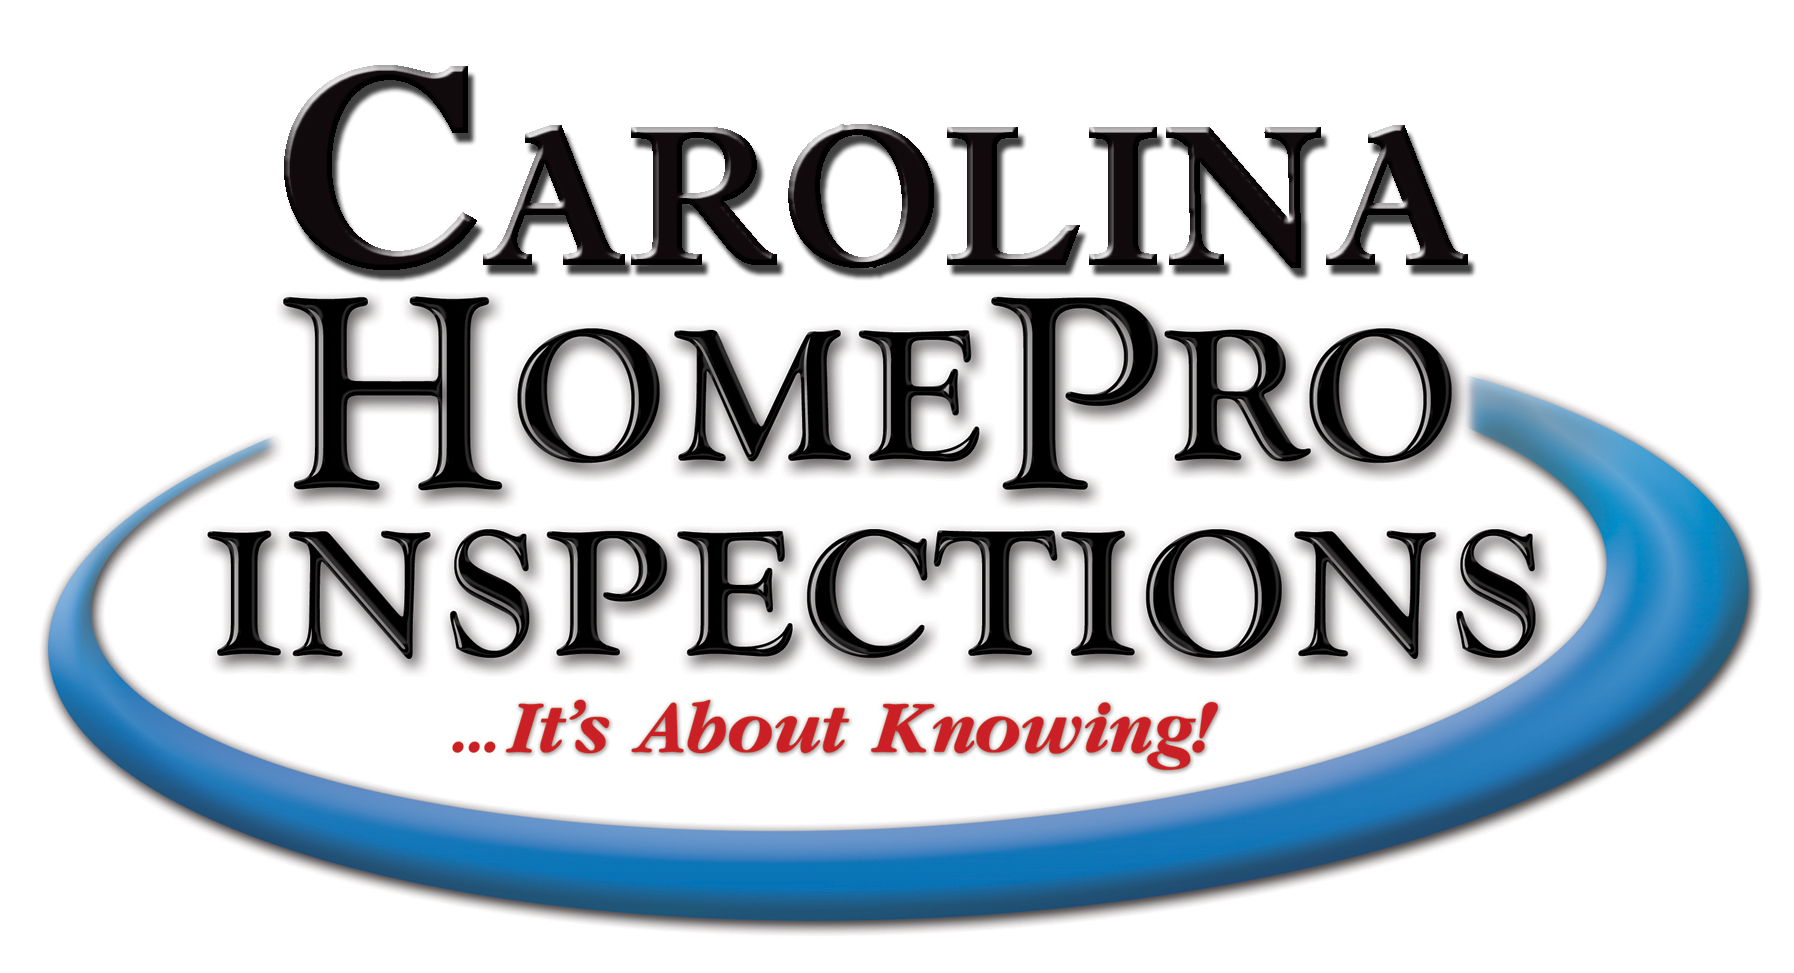 Carolina HomePro Inspections